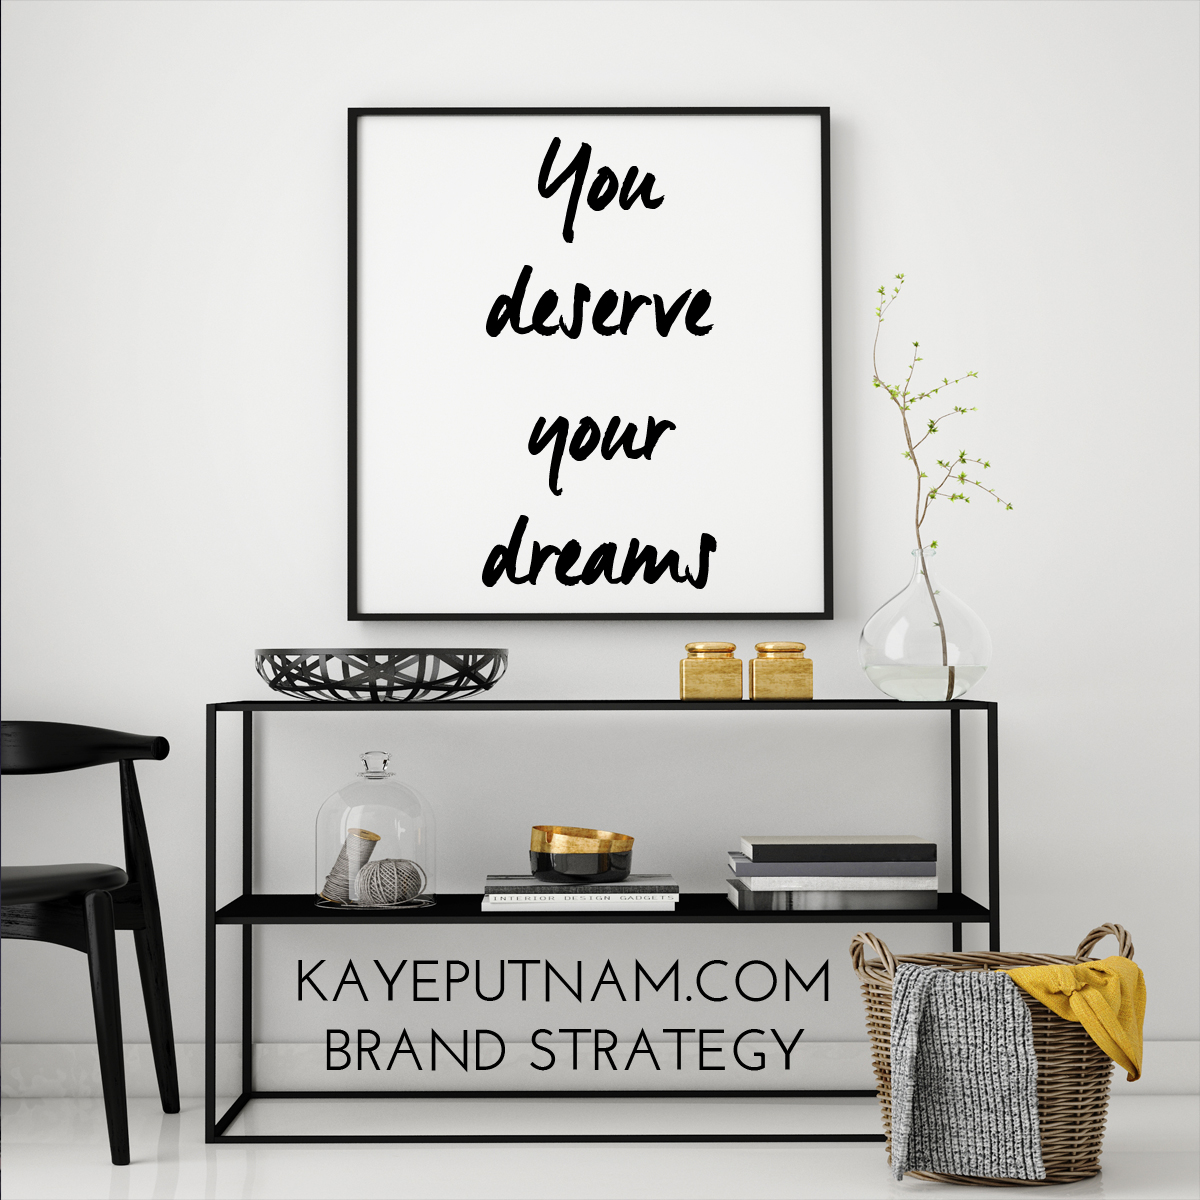 You deserve your dreams. #InDemandBrand